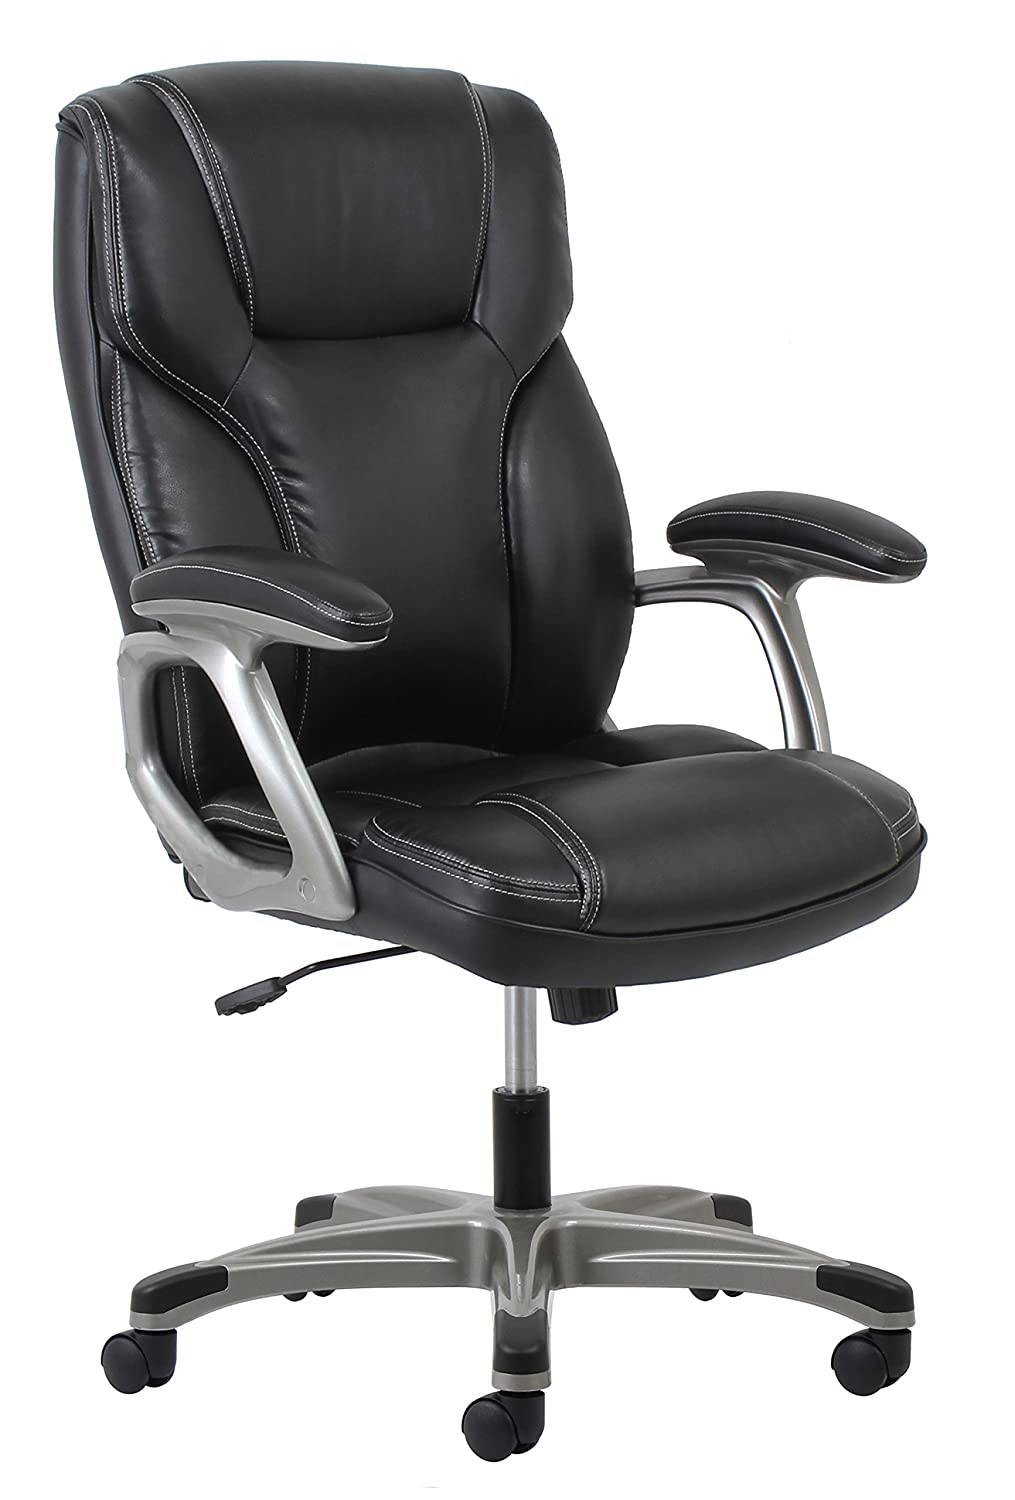 Essentials High-Back Leather Executive Office-Computer Chair with Arms - Ergonomic Swivel Chair (ESS-6030-BLK)